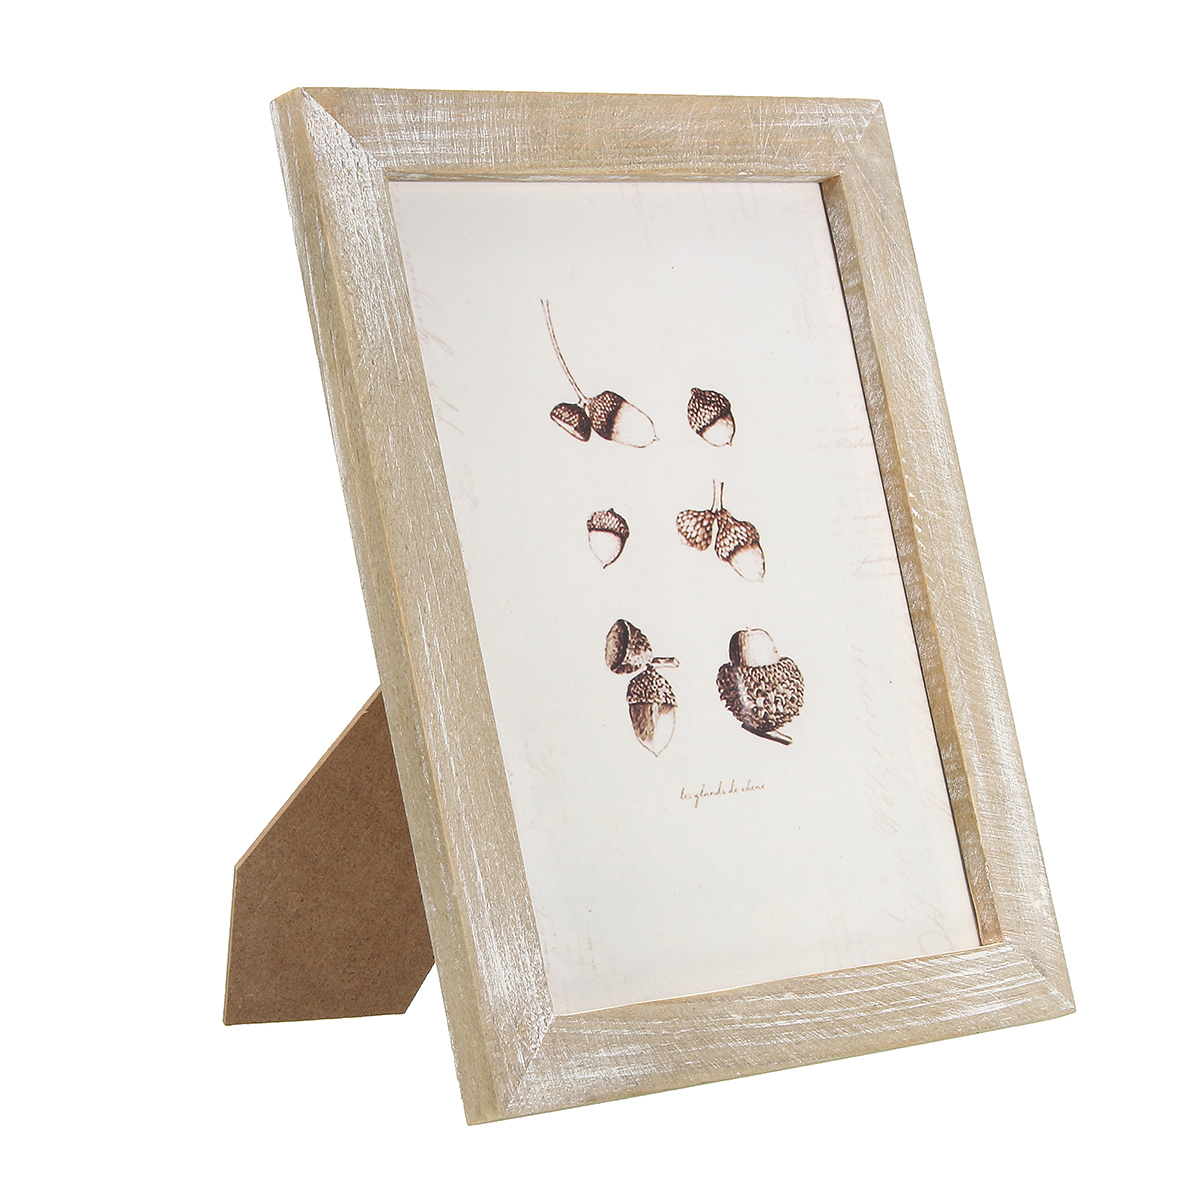 28x23cm/24x19cm Vintage Solid Wood Photo Picture Frame Wall Hanging Shabby Chic Room Decoration